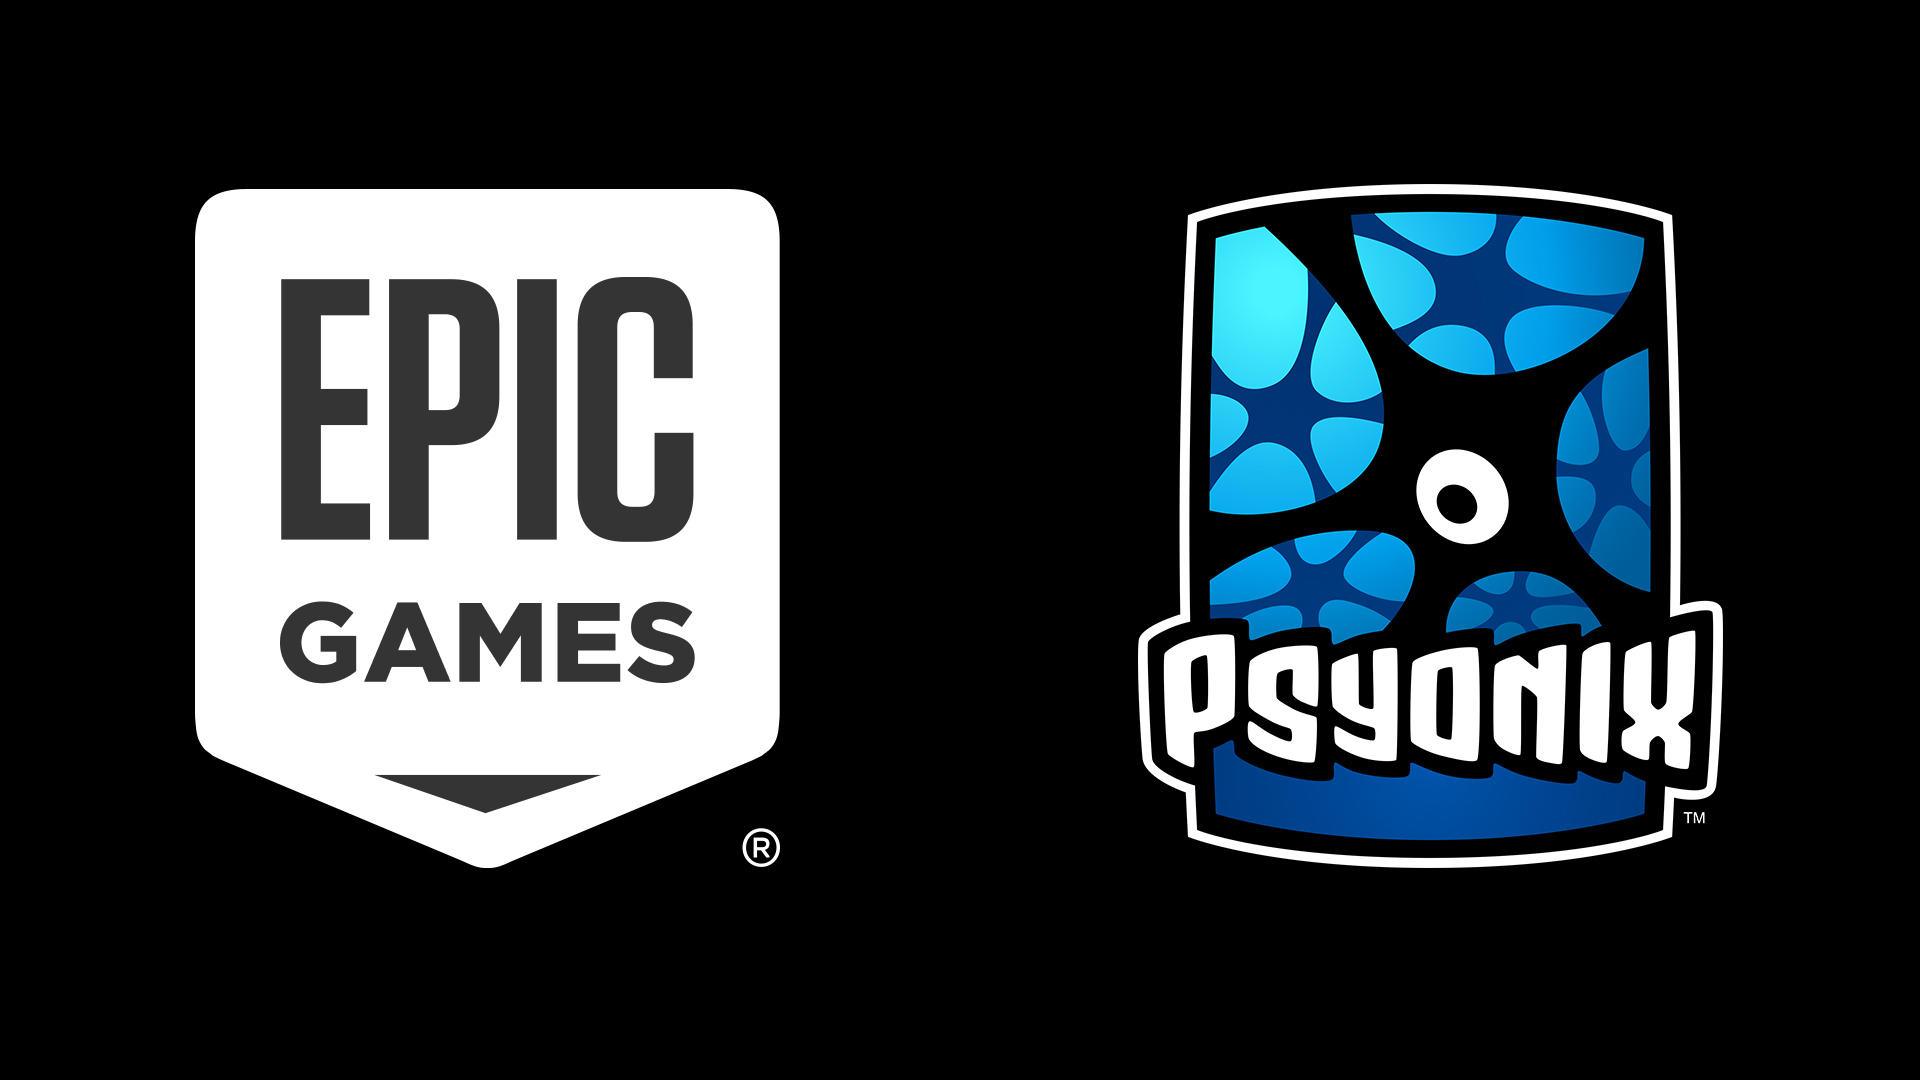 Epic Games ha comprado el estudio detrás de Rocket League